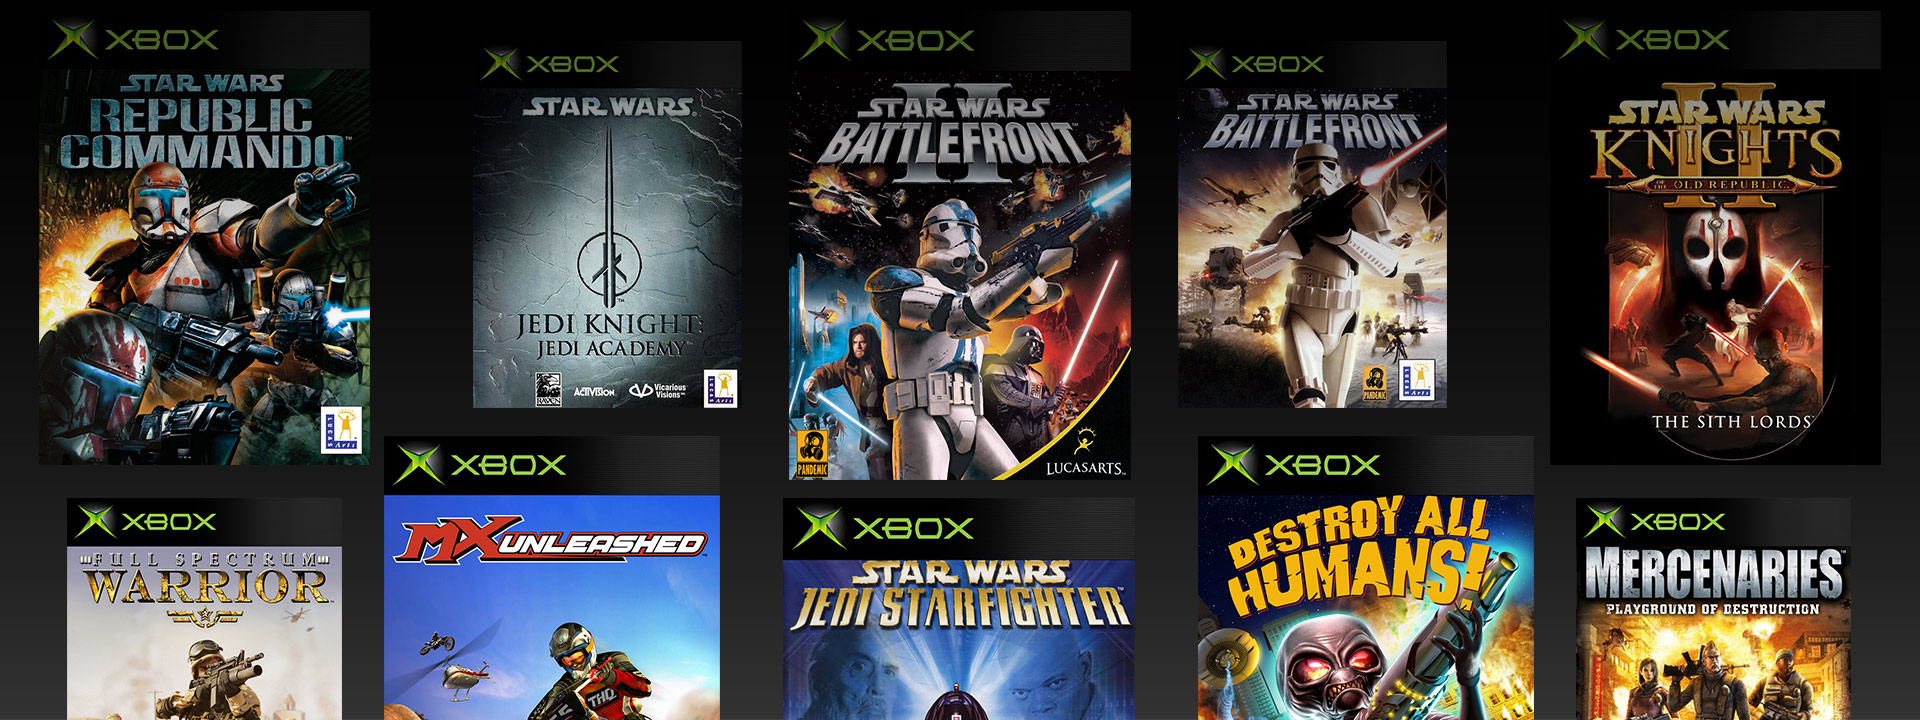 Original Xbox boxshots of Star Wars Republic Commando Jedi Knights Jedi Academy Battlefront 2 Battlefront 1 Knights of the old Republic 2 Full Spectrum Warrior MX Unleashed Destroy All Humans Mercenaries